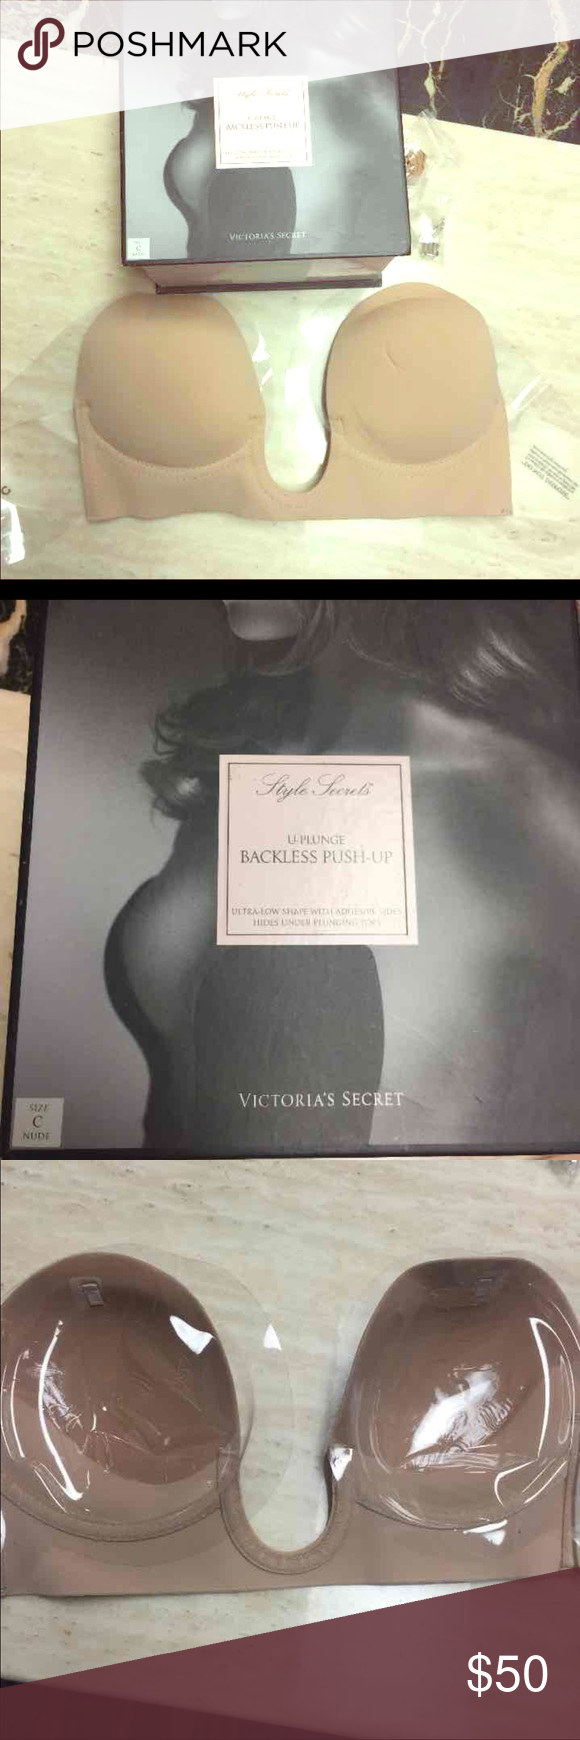 VS Backless push up NWT! Nude color backless bra. No trade. C-cup. Victoria's Secret Intimates & Sleepwear Bras